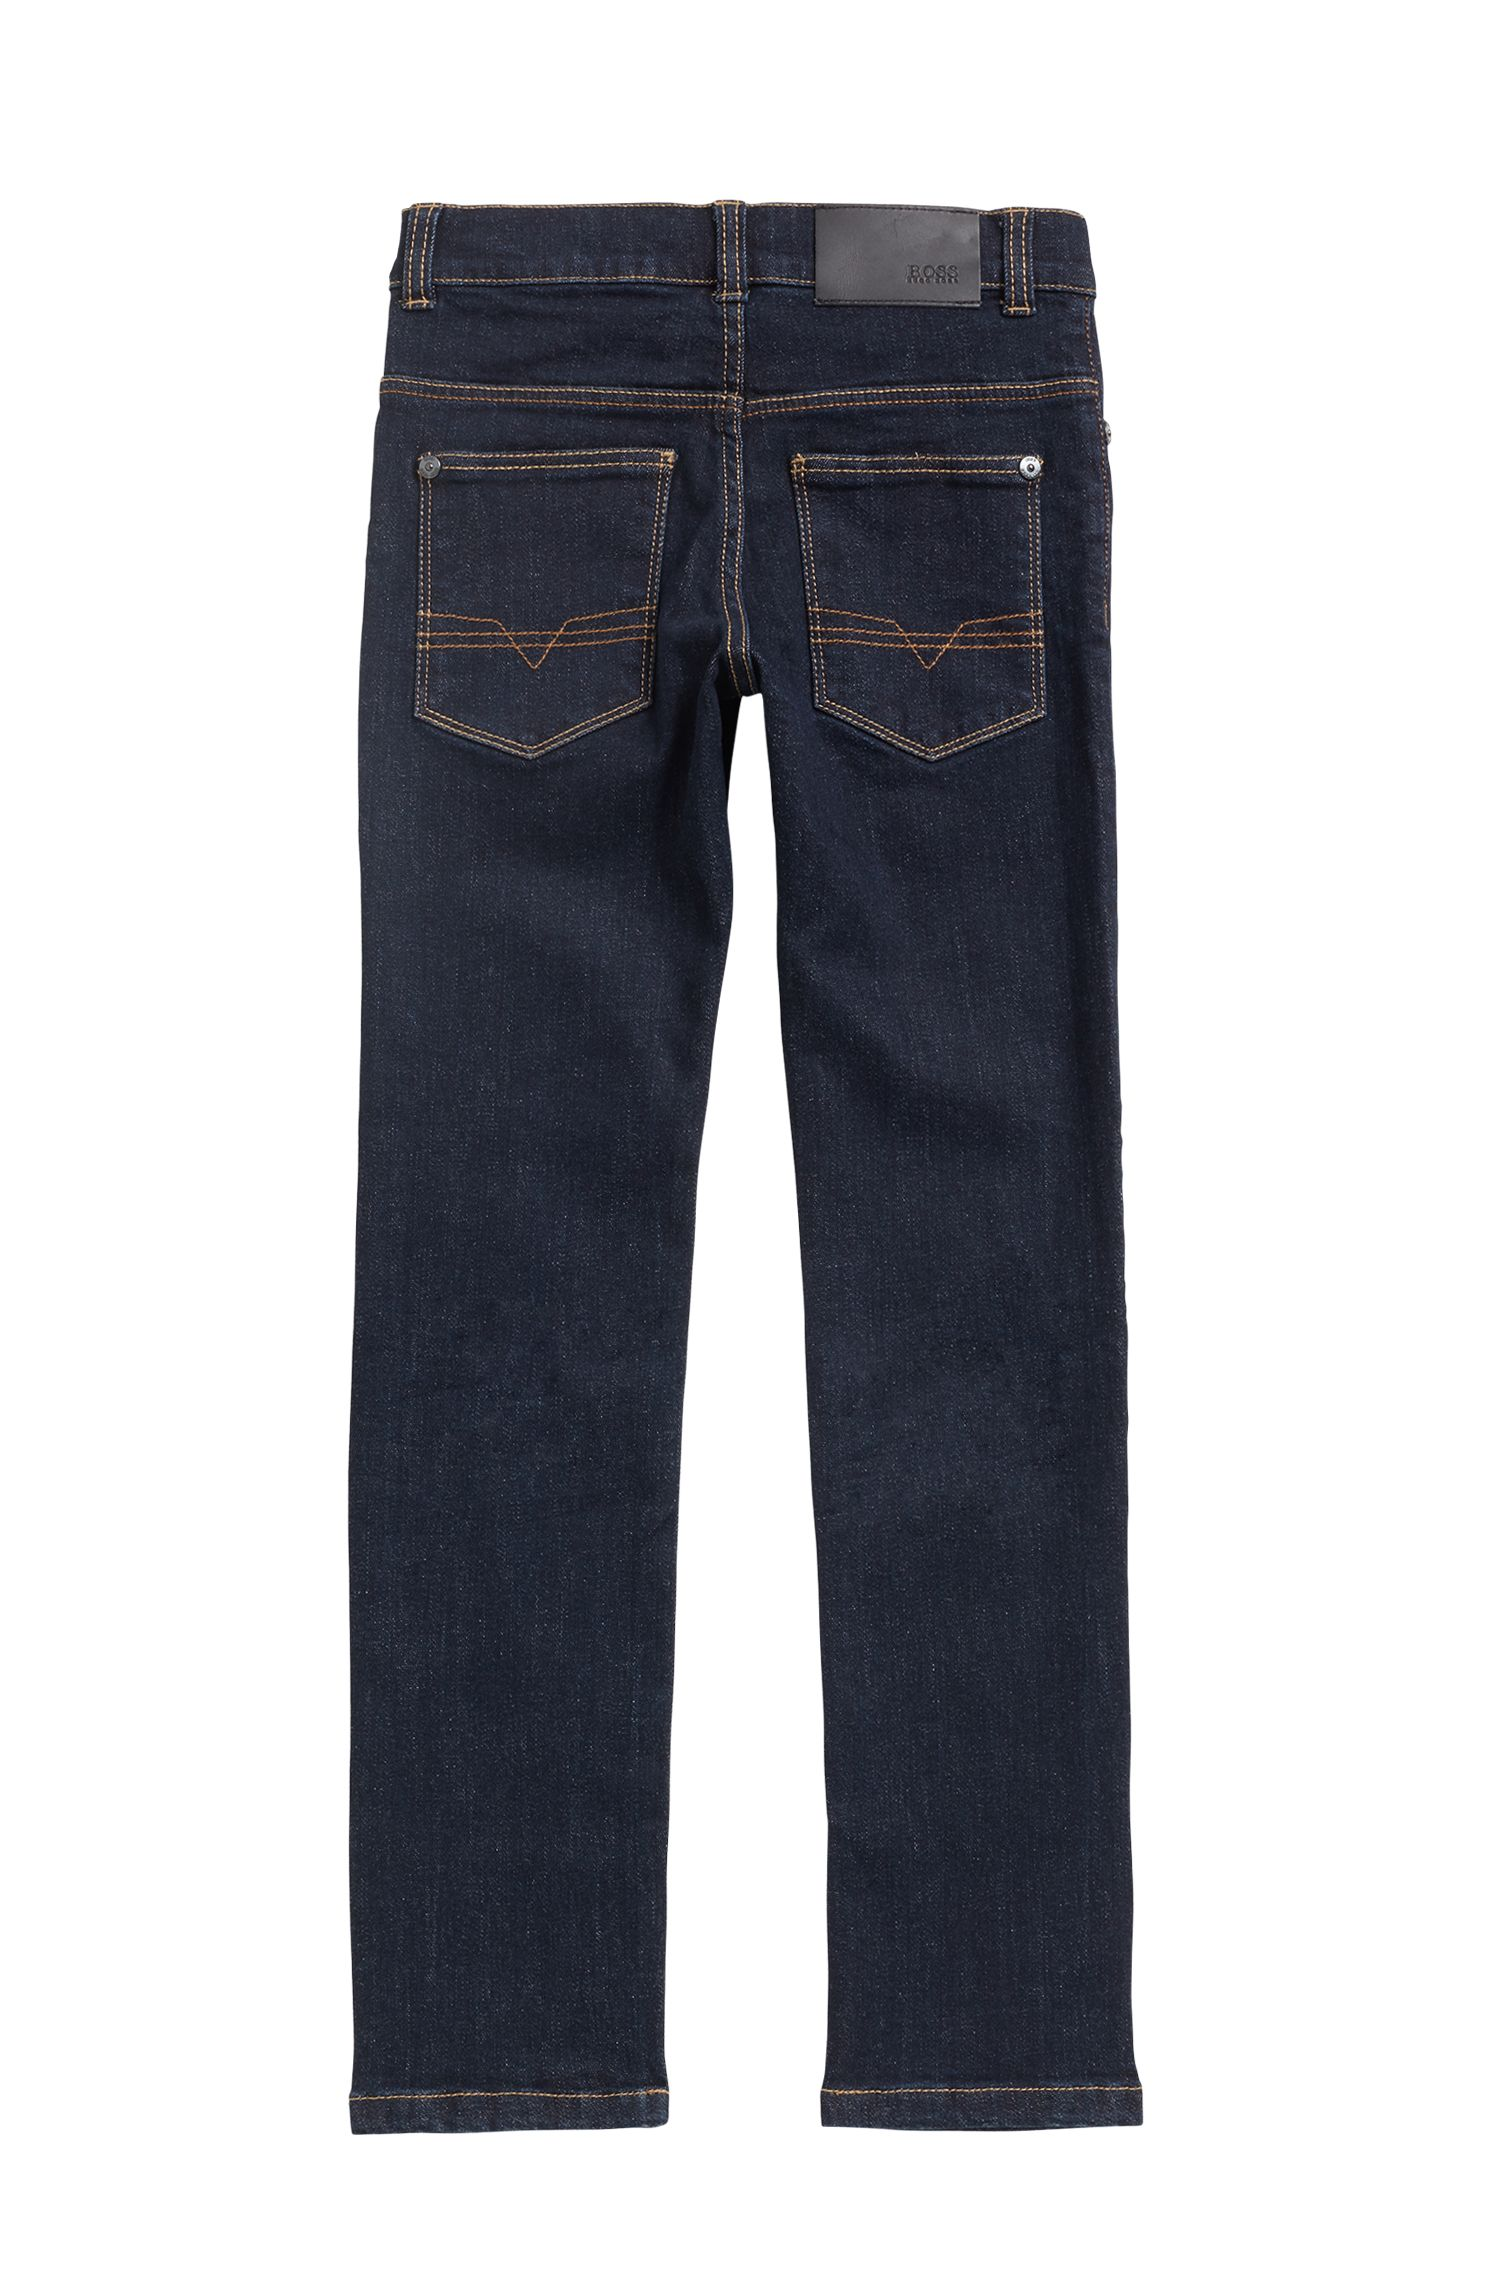 Jean pour enfant en denim stretch Rinsed Washed, Fantaisie